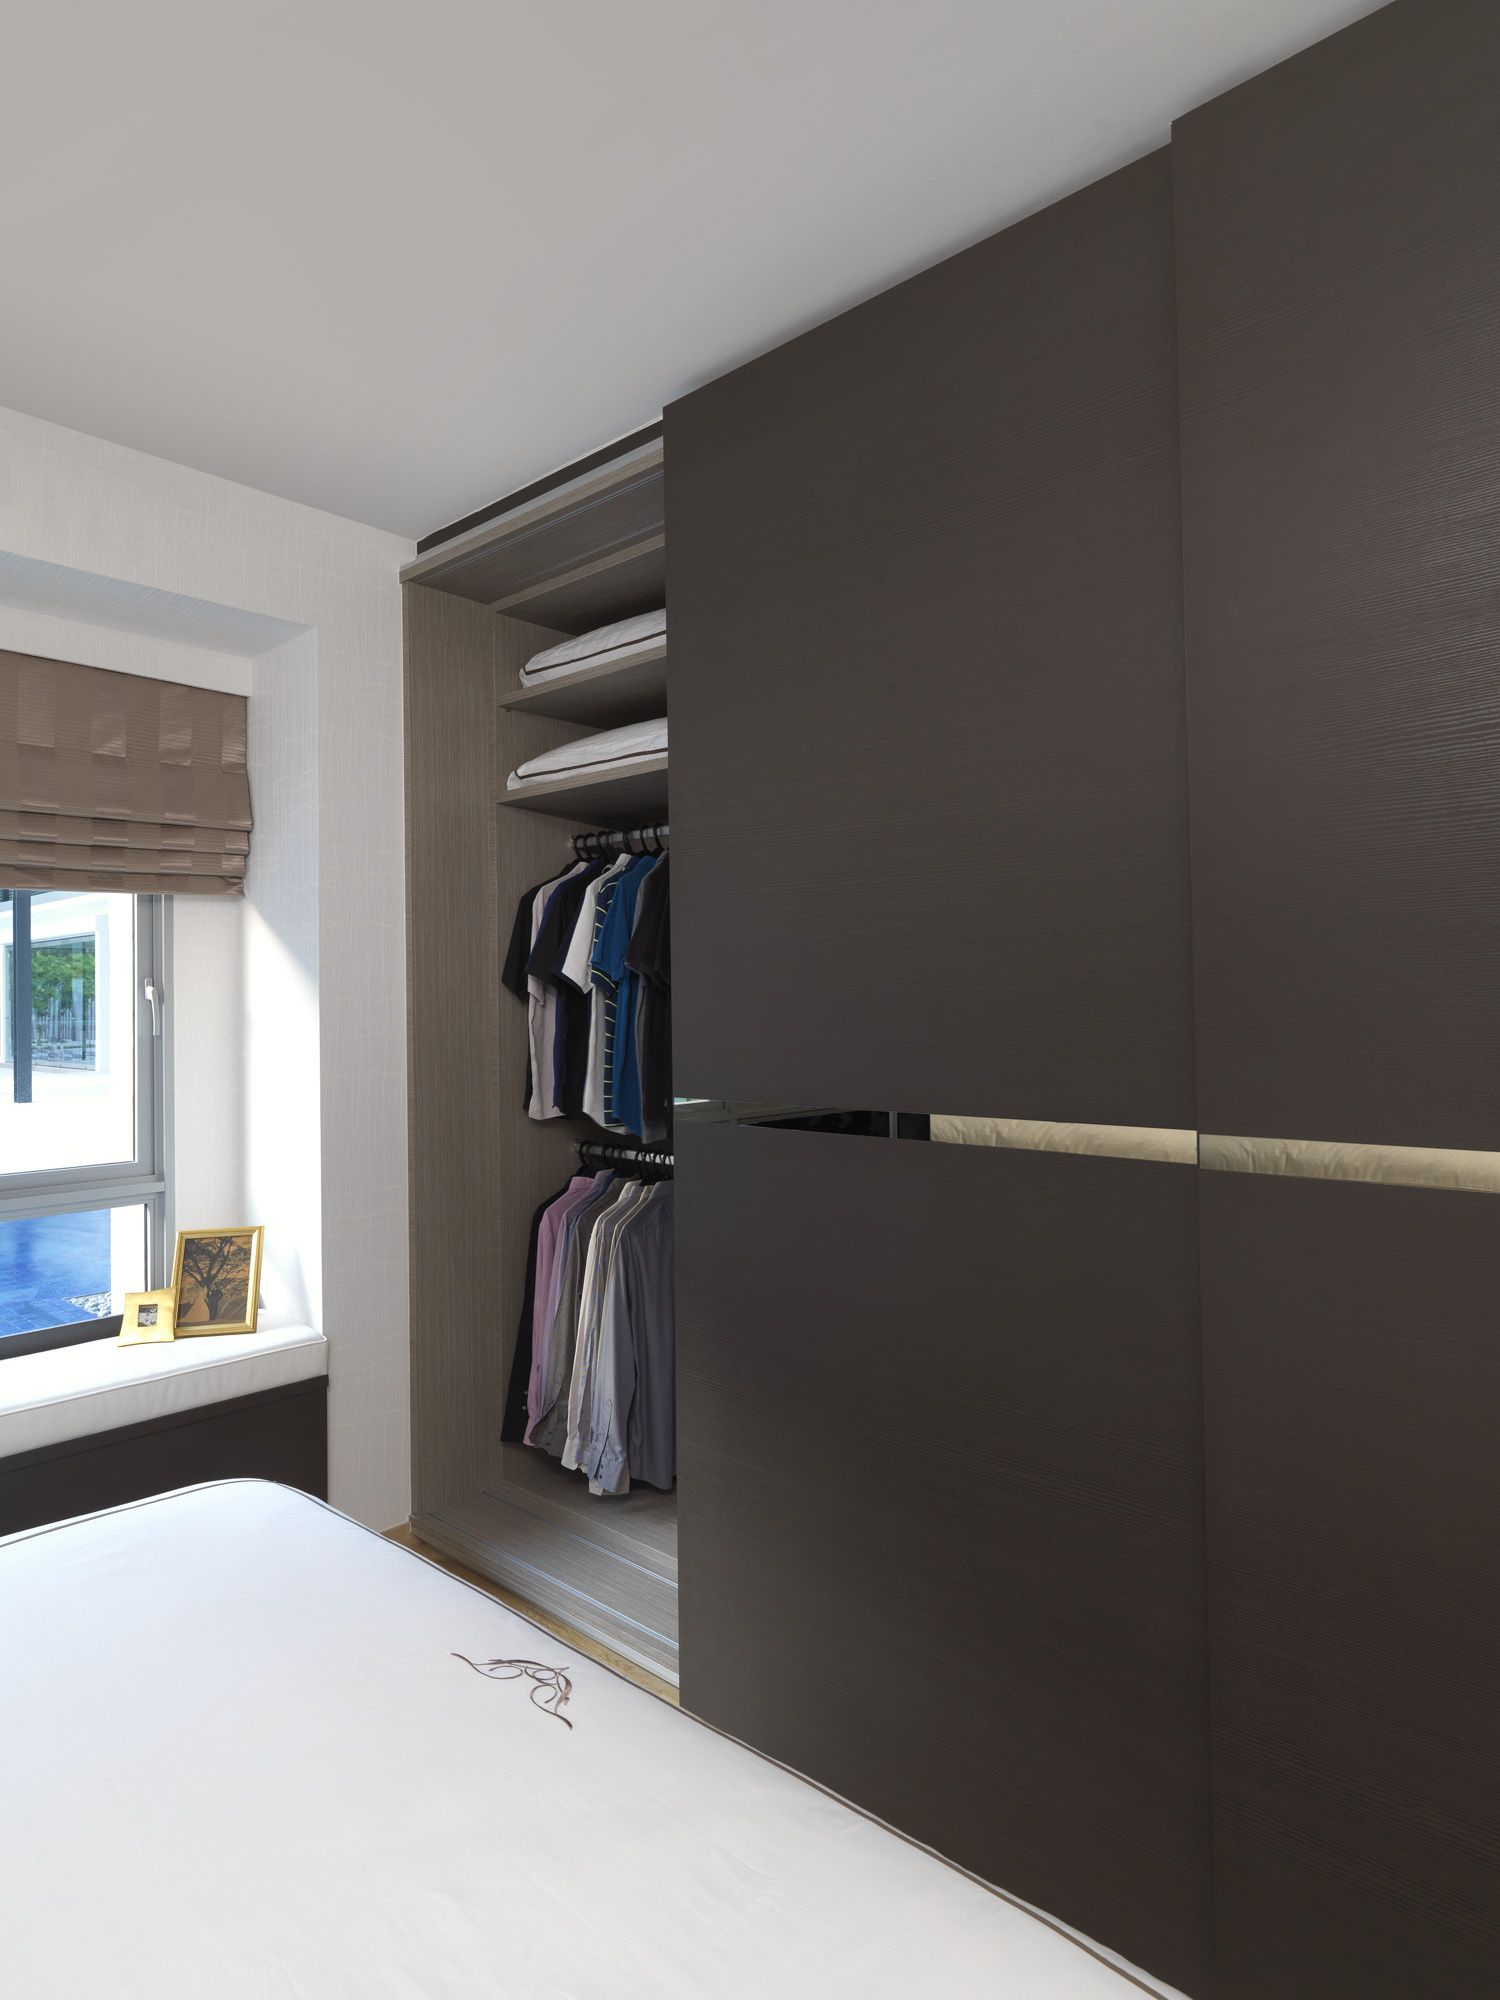 Sliding Wardrobe Wardrobe Design Sliding Door Wardrobe Designs Bedroom Wardrobe Wardrobe Design Bedroom